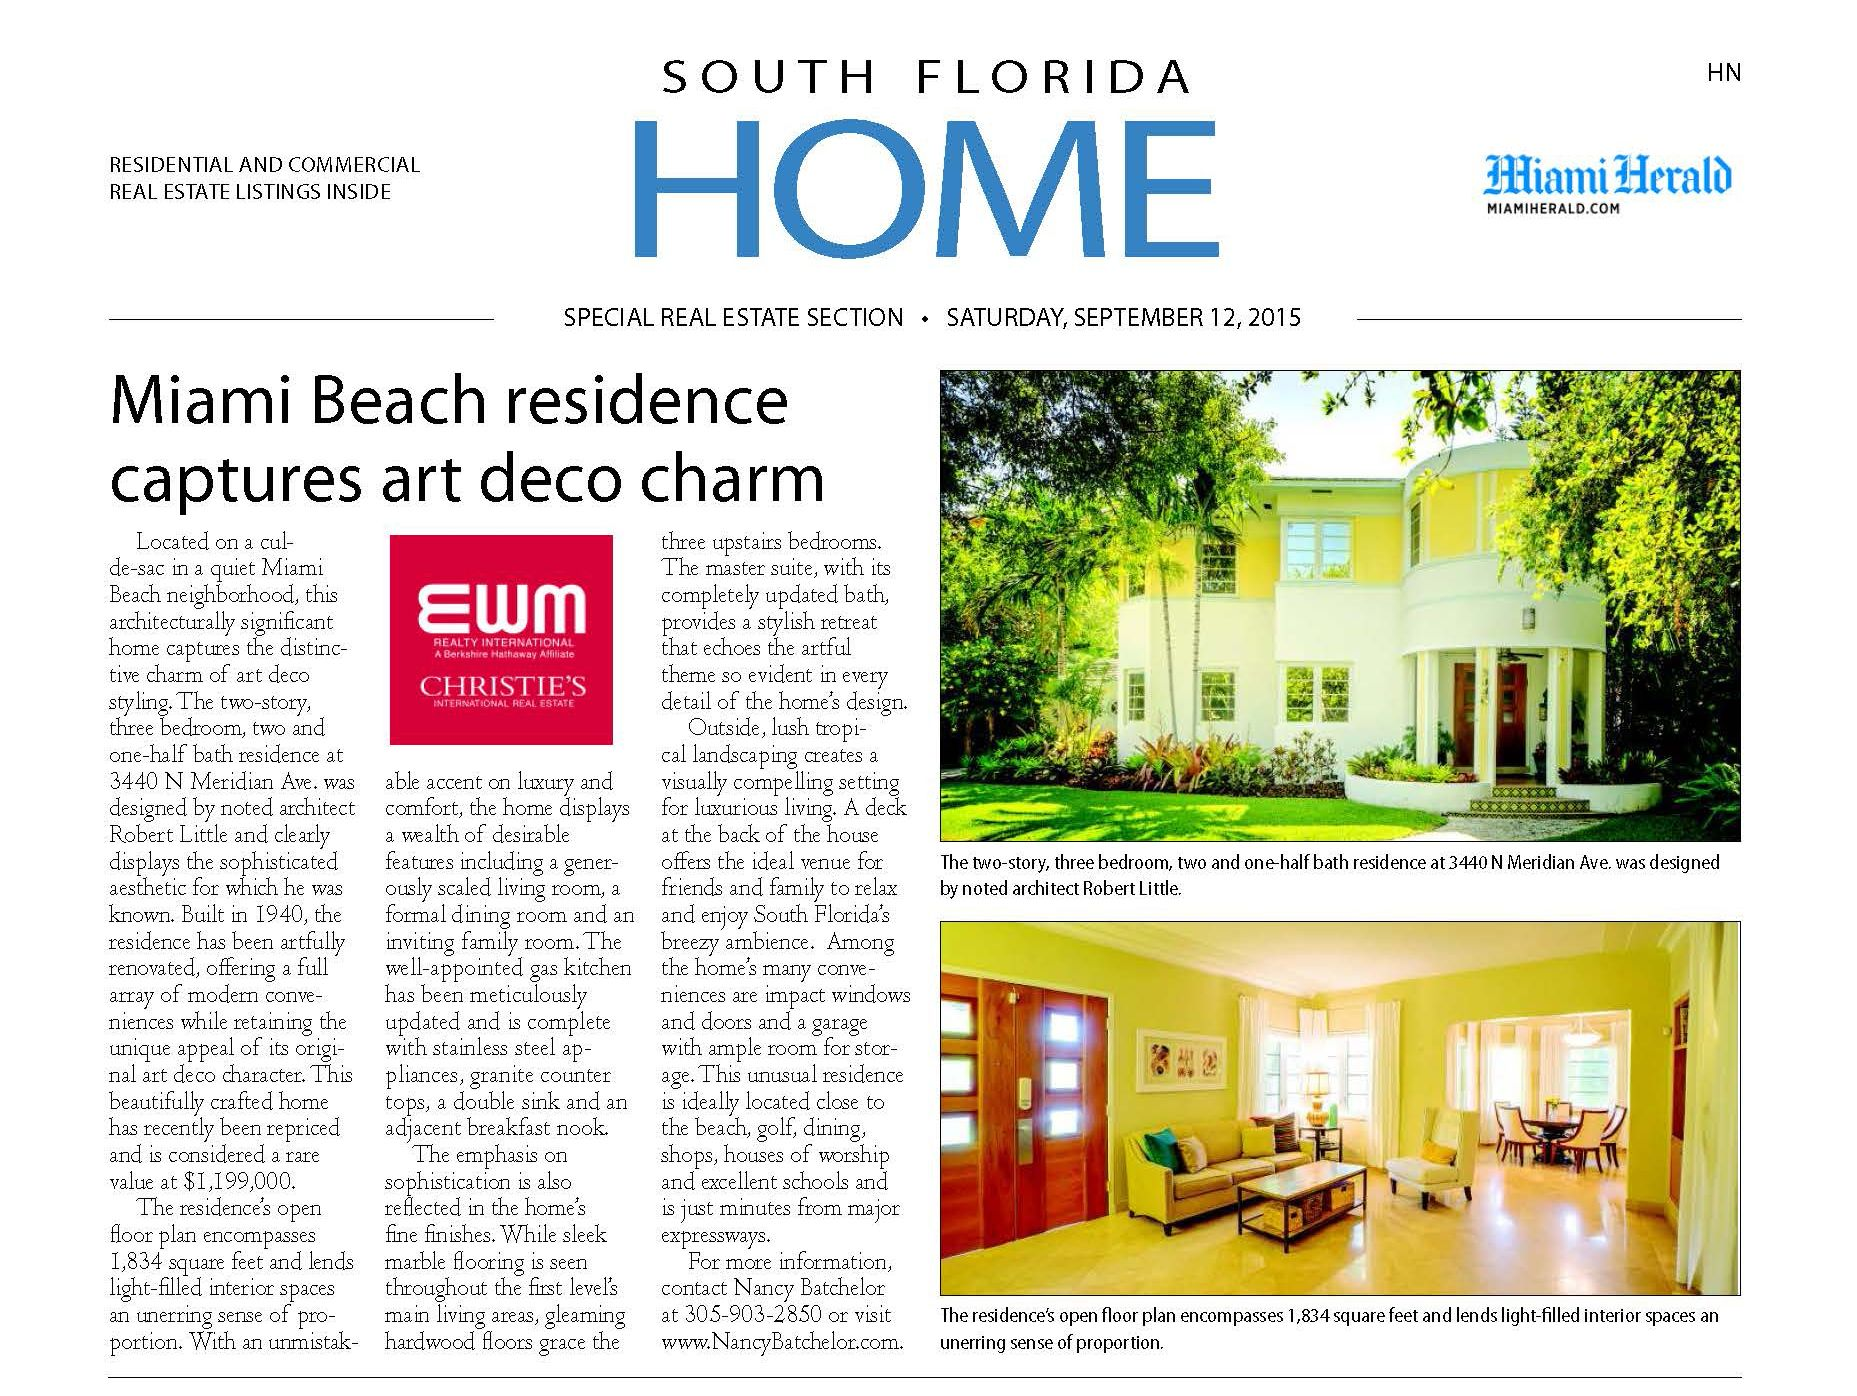 MIAMI BEACH ART DECO HOME FEATURED IN MIAMI HERALD